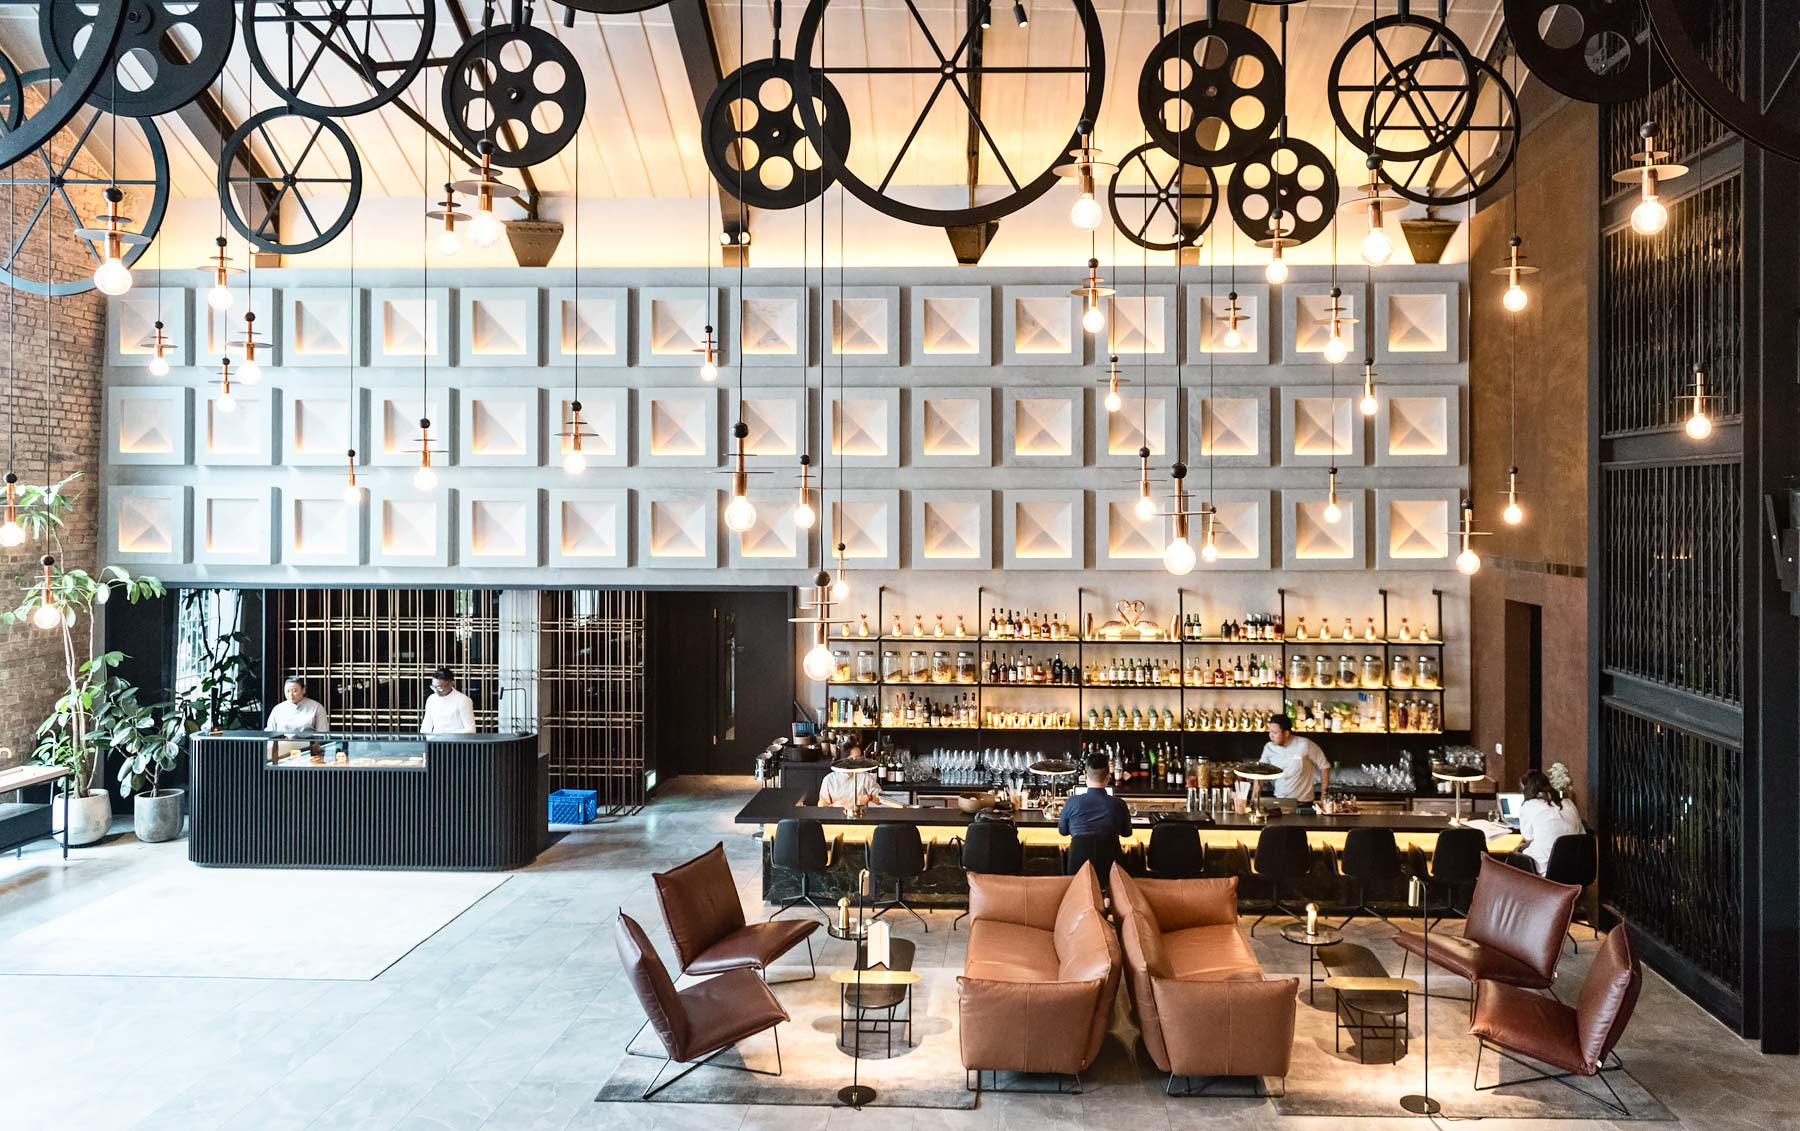 Grand The Warehouse Hotel In Singapore: A Beautiful Boutique Hotel With An  Industrial Chic Atmosphere